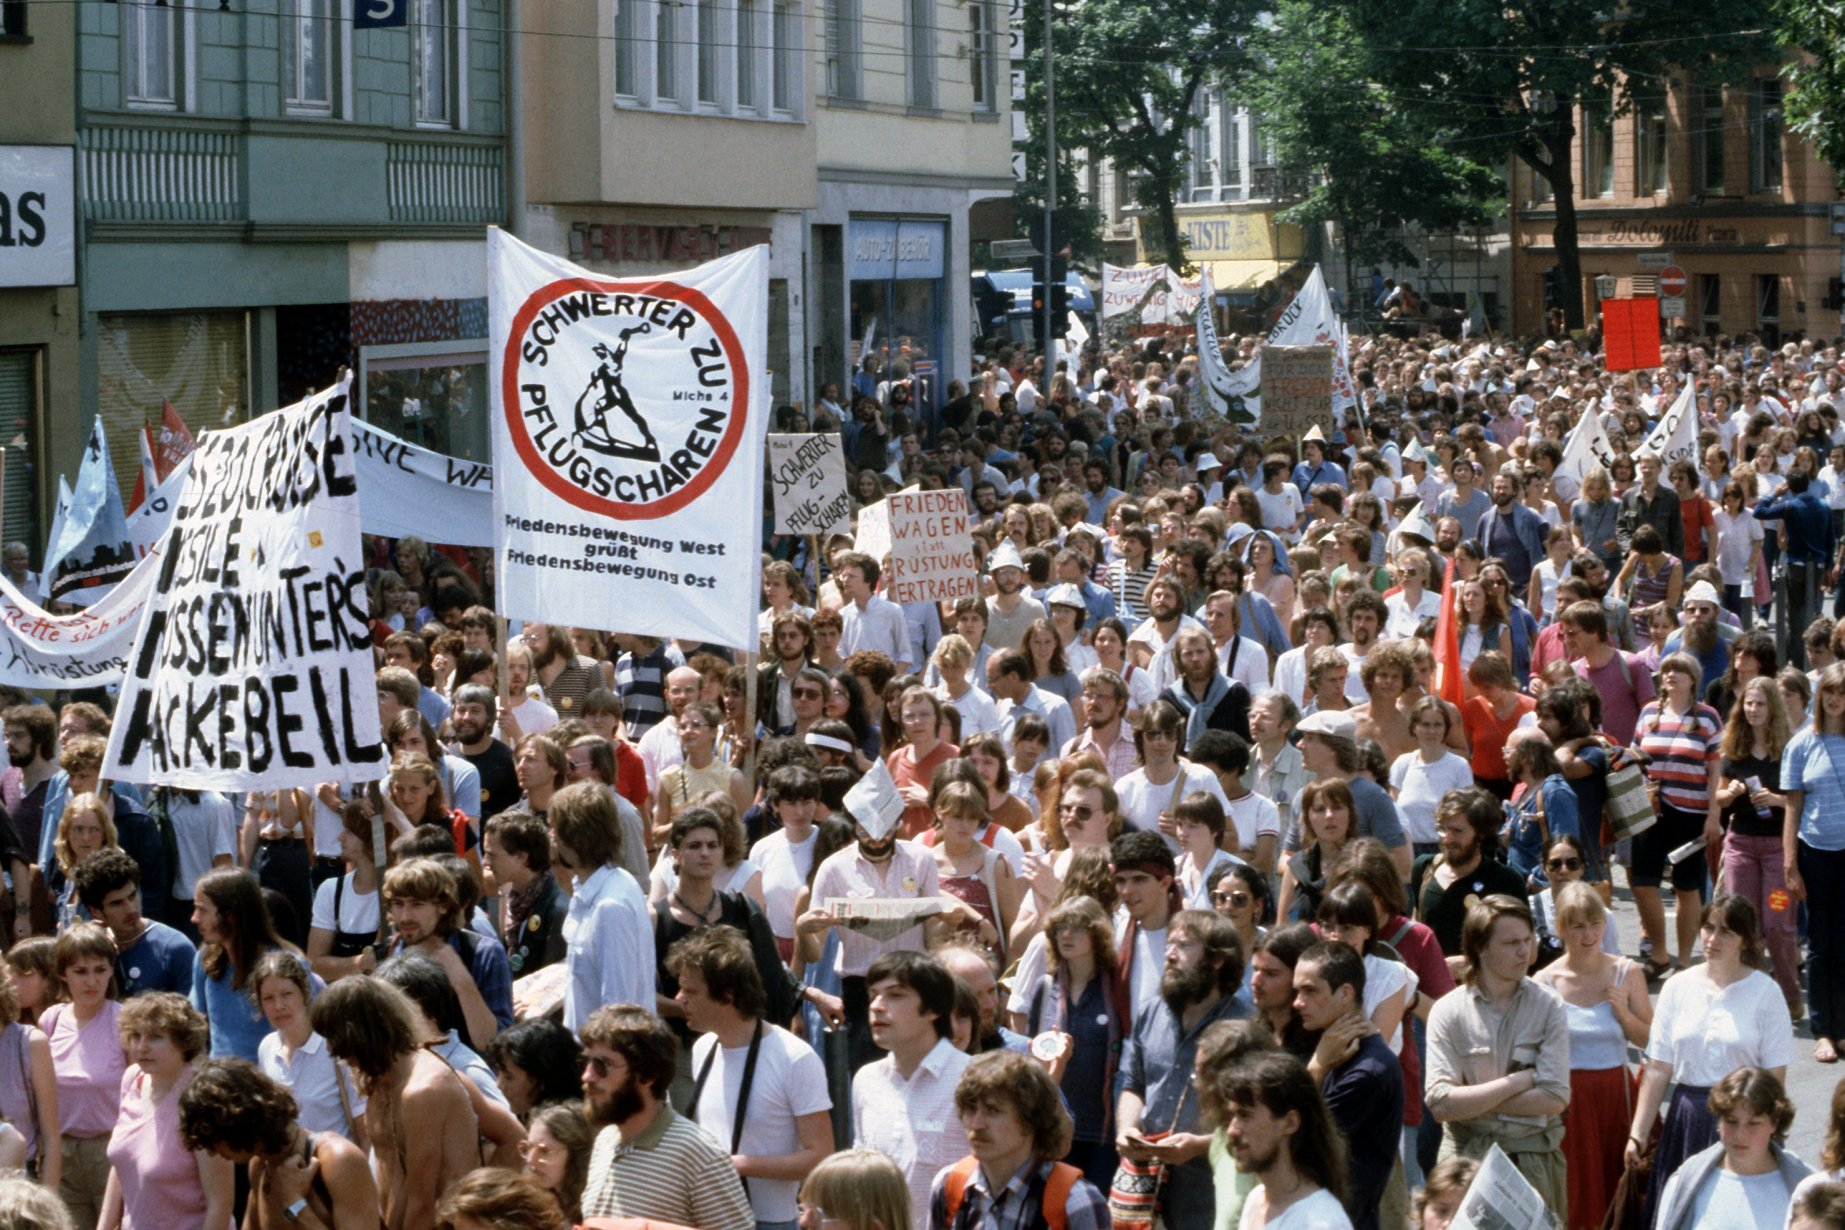 Friedensdemonstration in Bonn